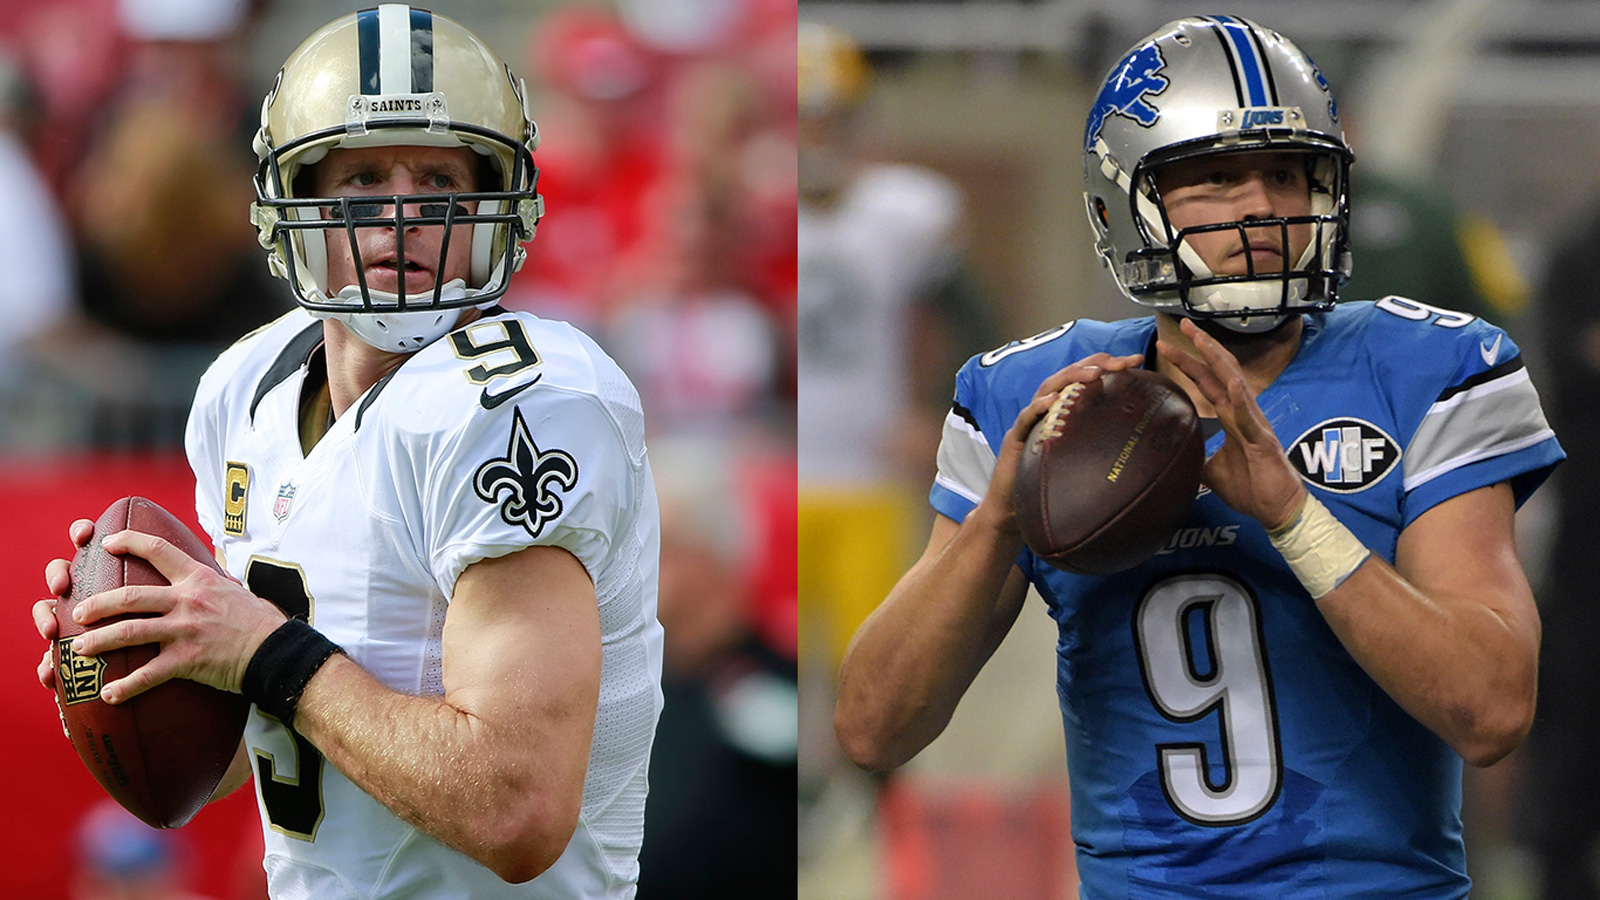 Monday night matchup still important for Lions, Saints